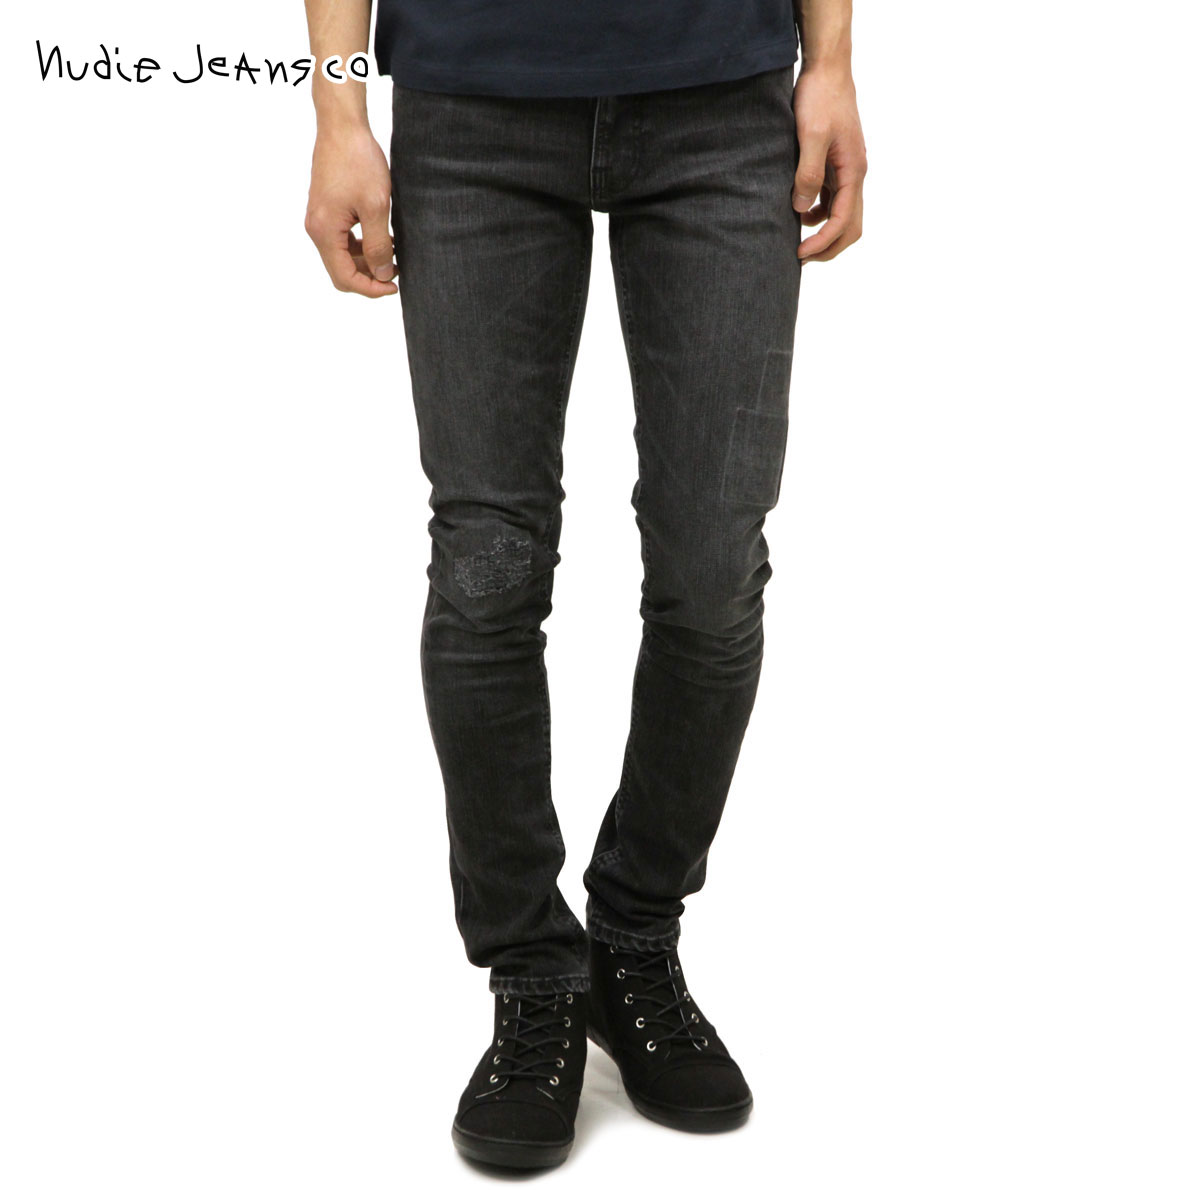 96e443f459e Nudie jeans Nudie Jeans regular store men jeans Lean Dean 654 Grey Patch  112144 D00S20 ...